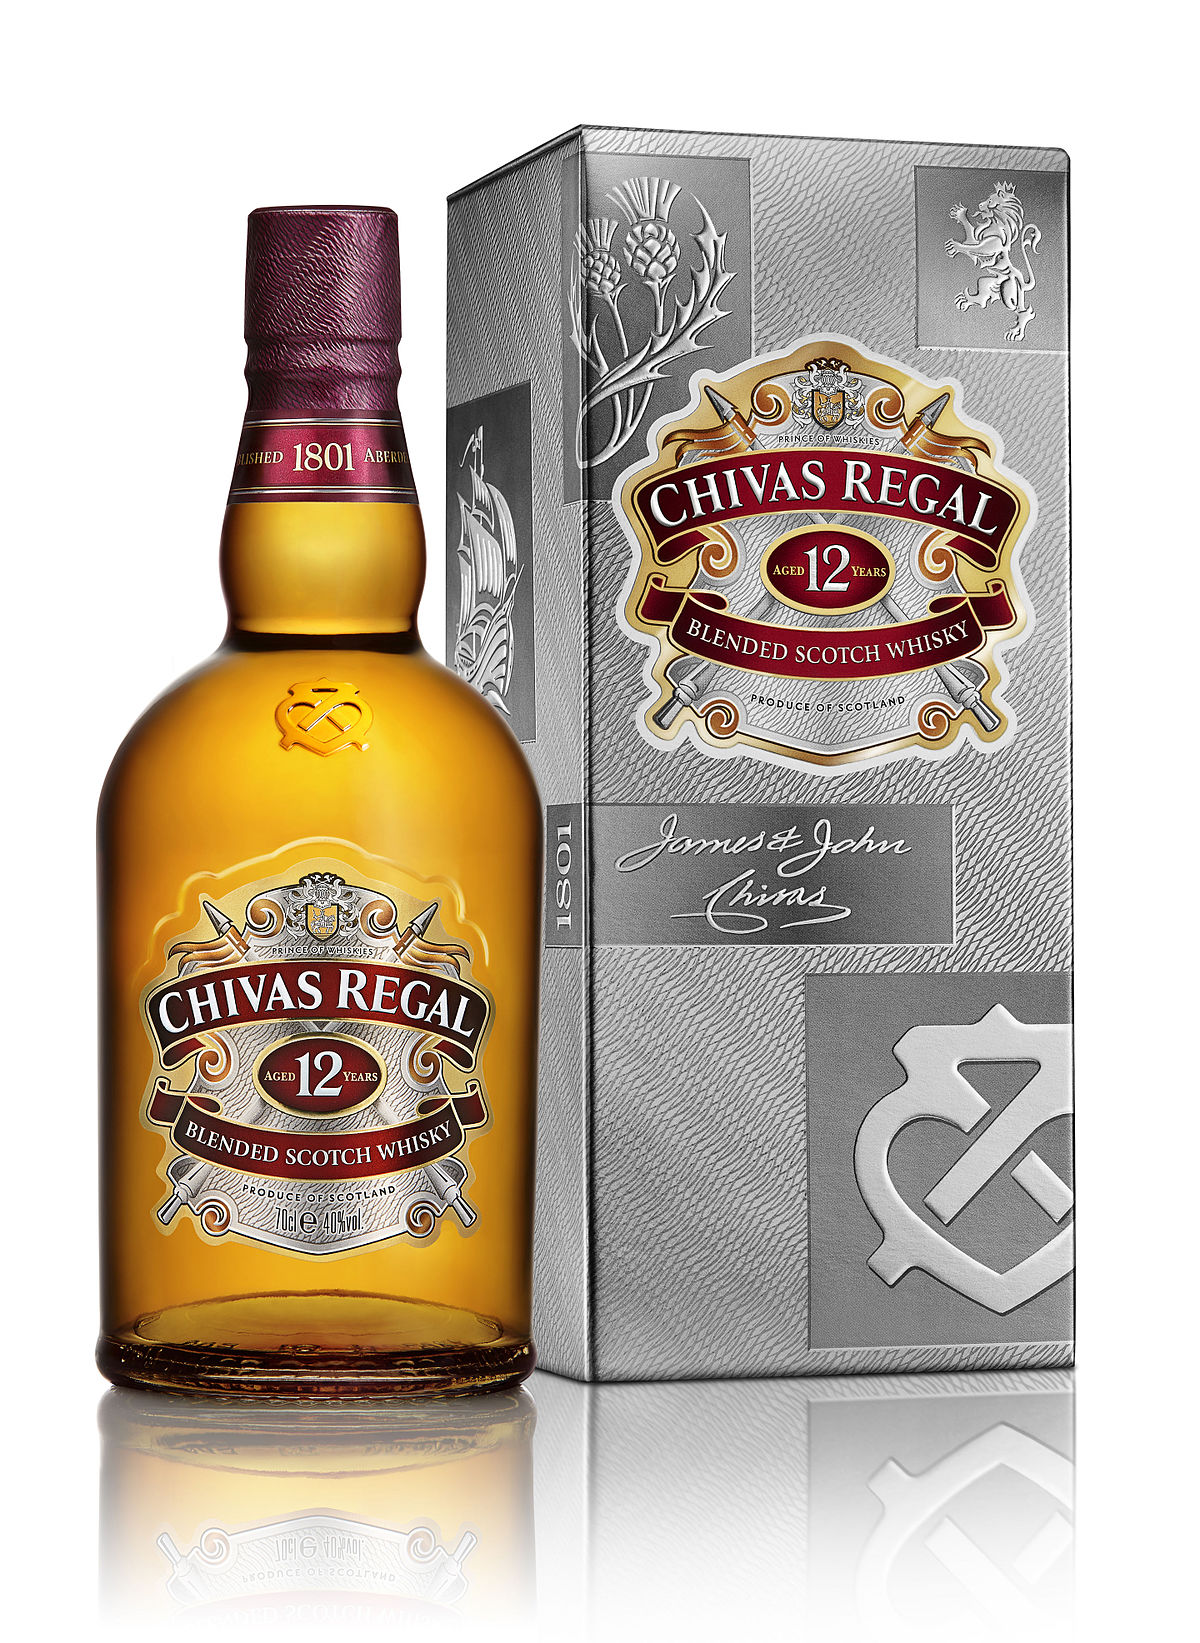 Chivas regal wikipedia voltagebd Images